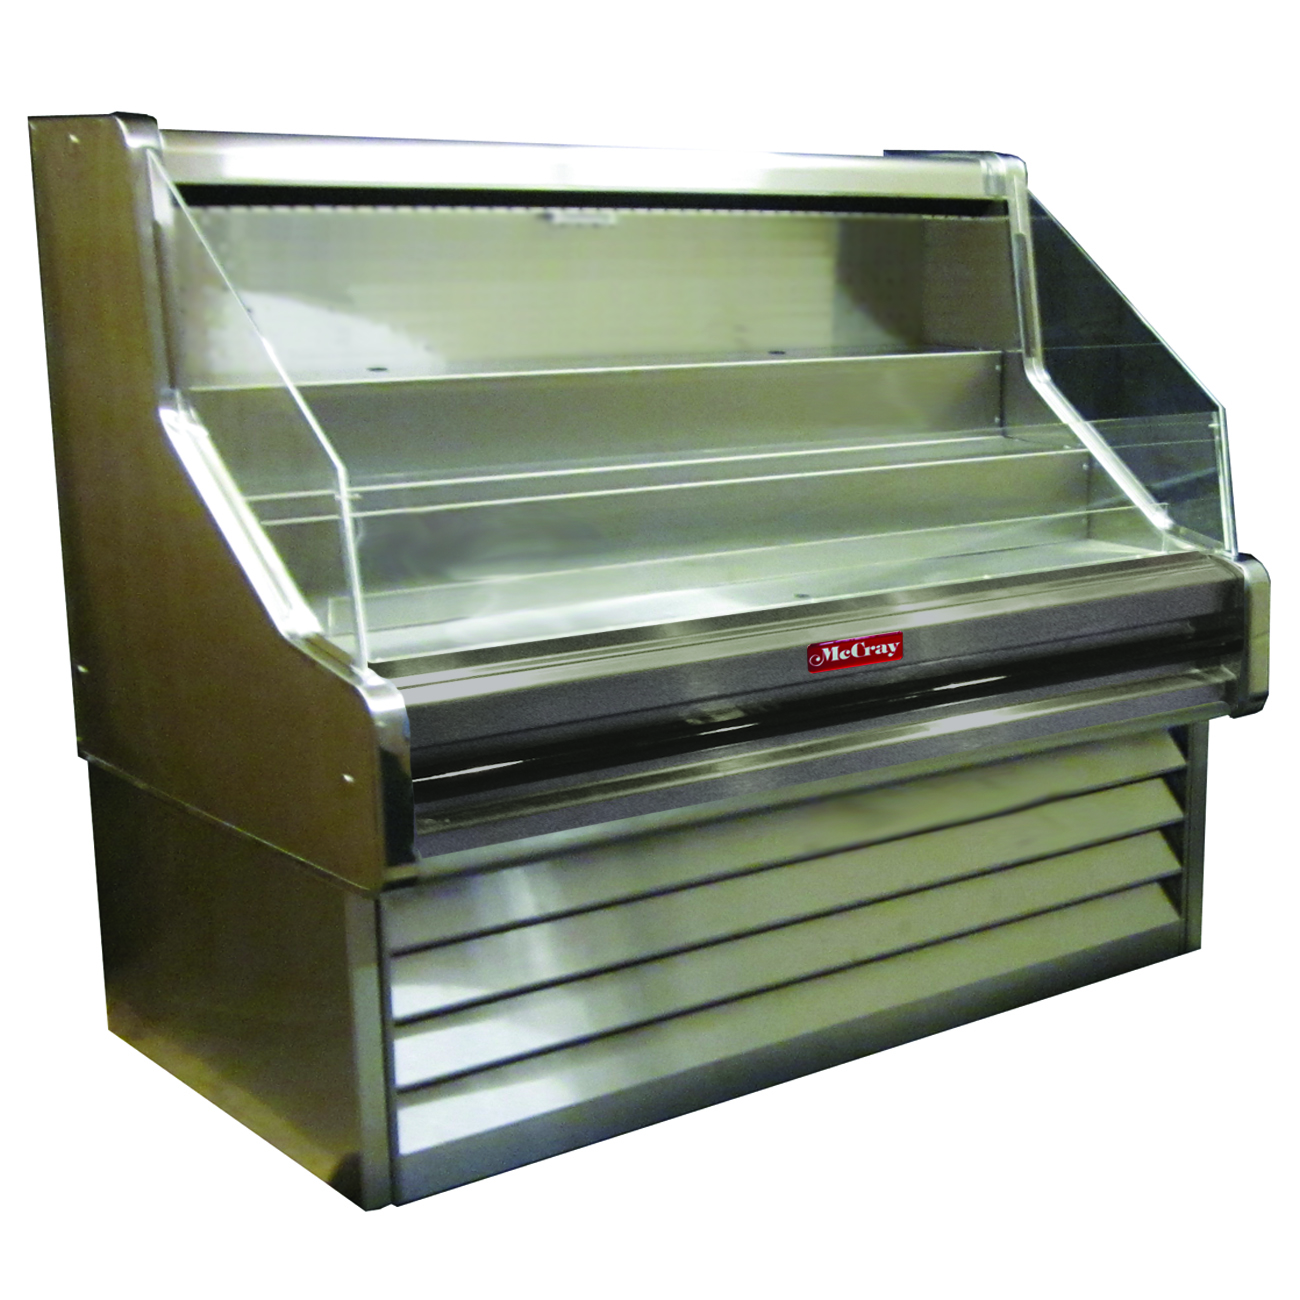 Howard-McCray SC-OS30E-3-S-LED merchandiser, open refrigerated display